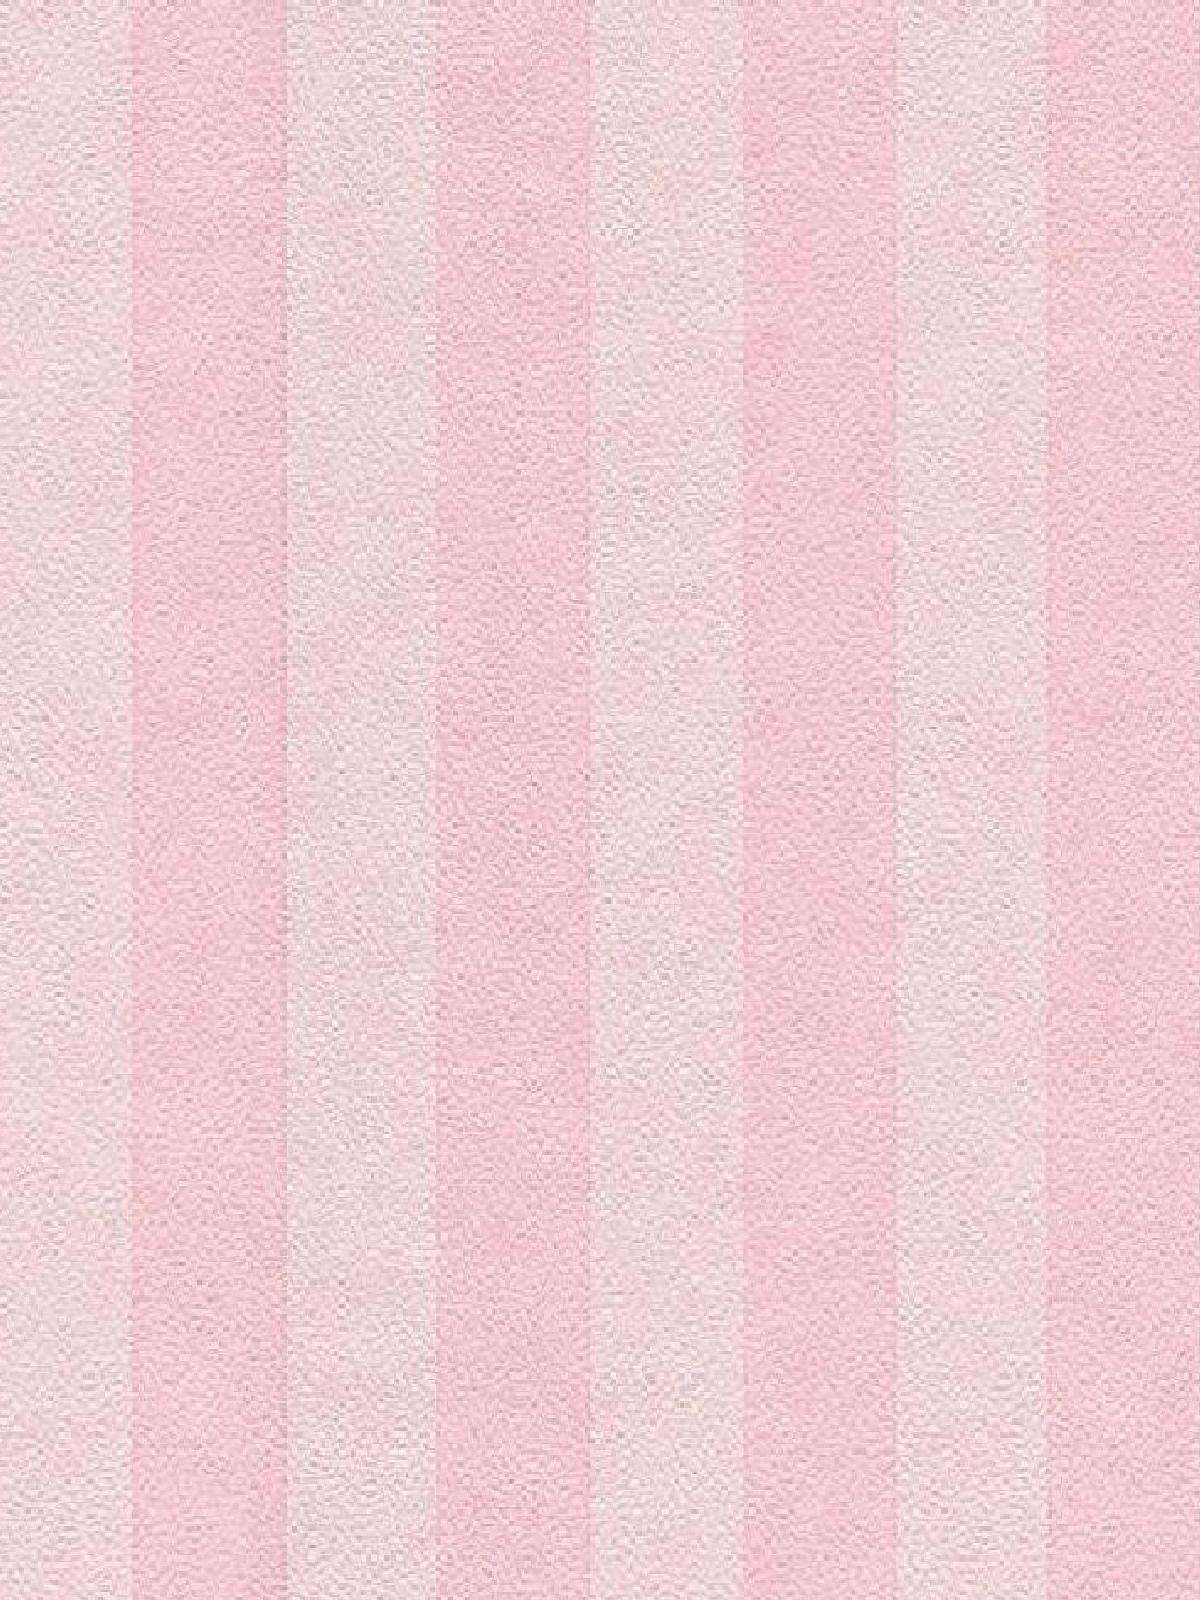 soft pink backgrounds